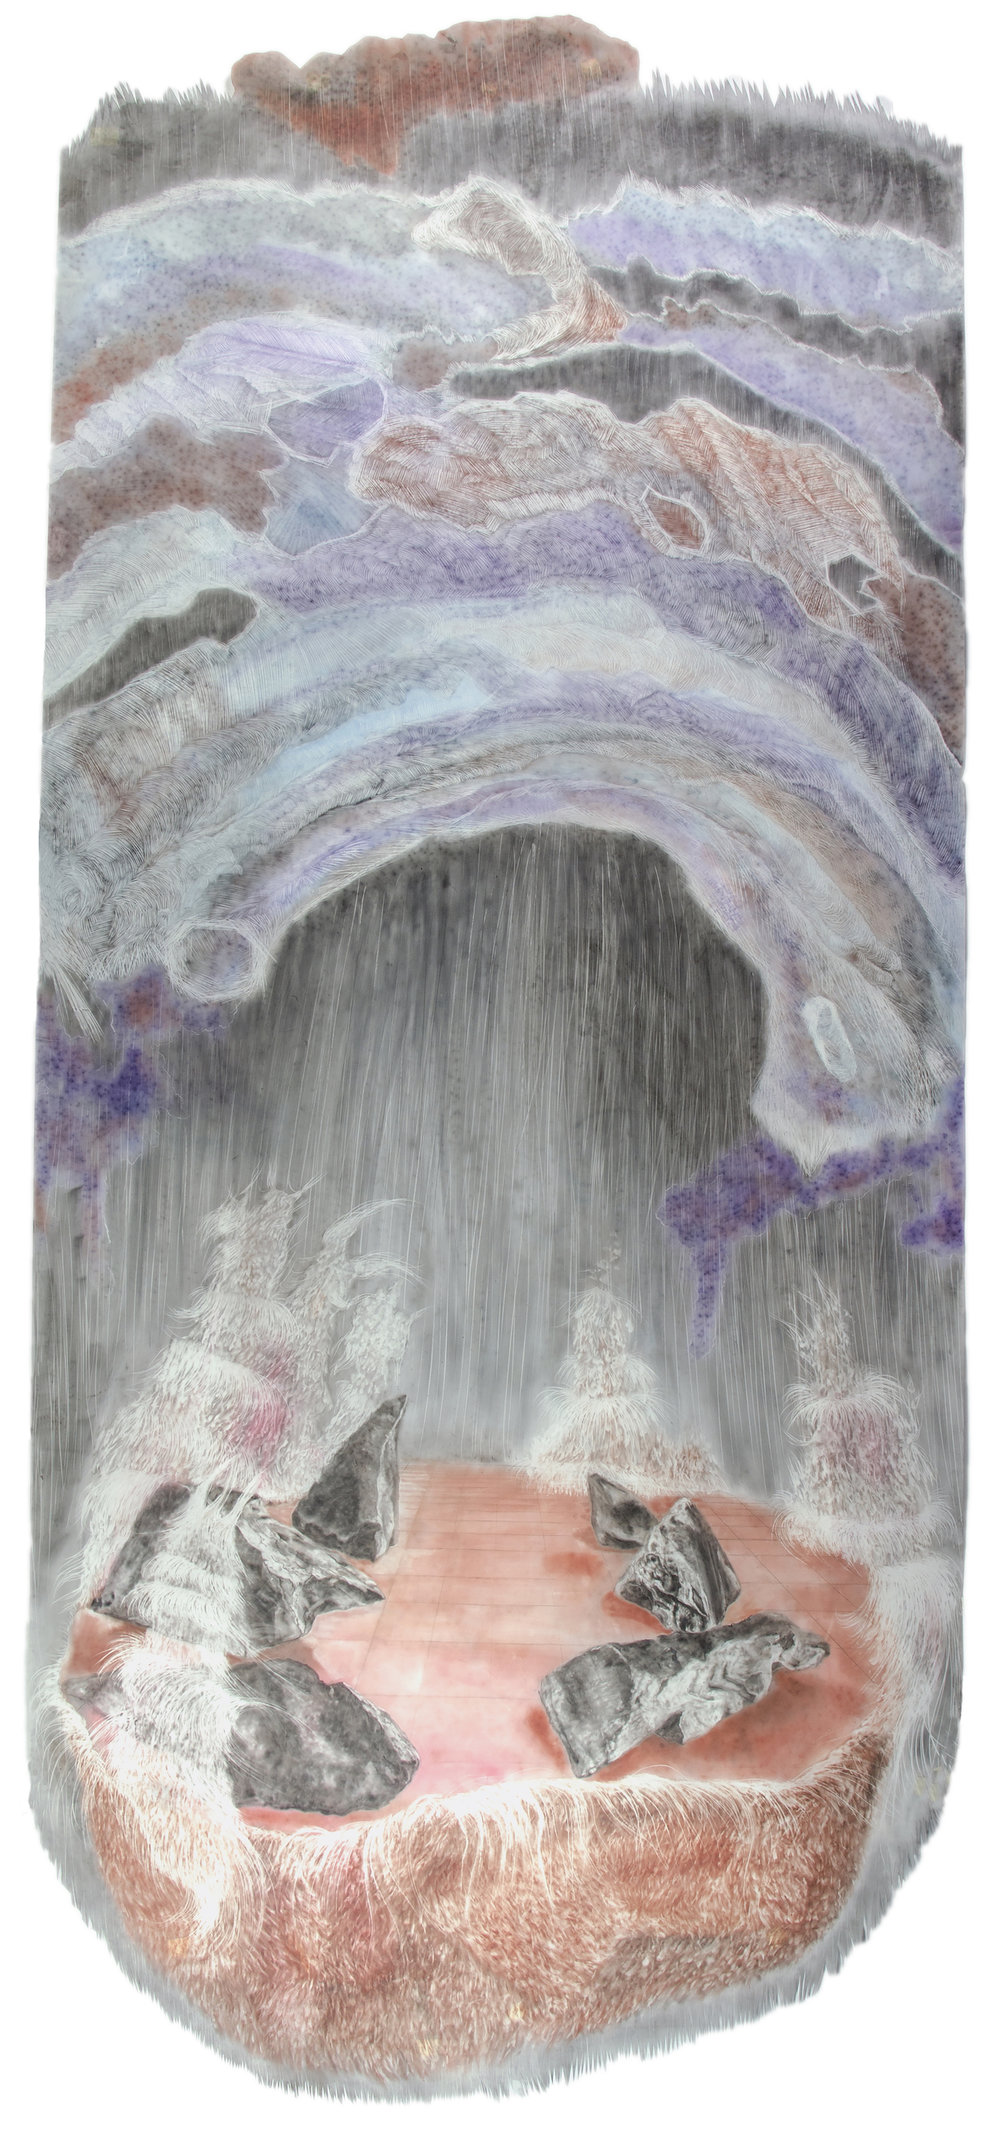 Untitled I (40 inches x 79.5 inches-pastel and powdered graphite erasing on dura-lar)